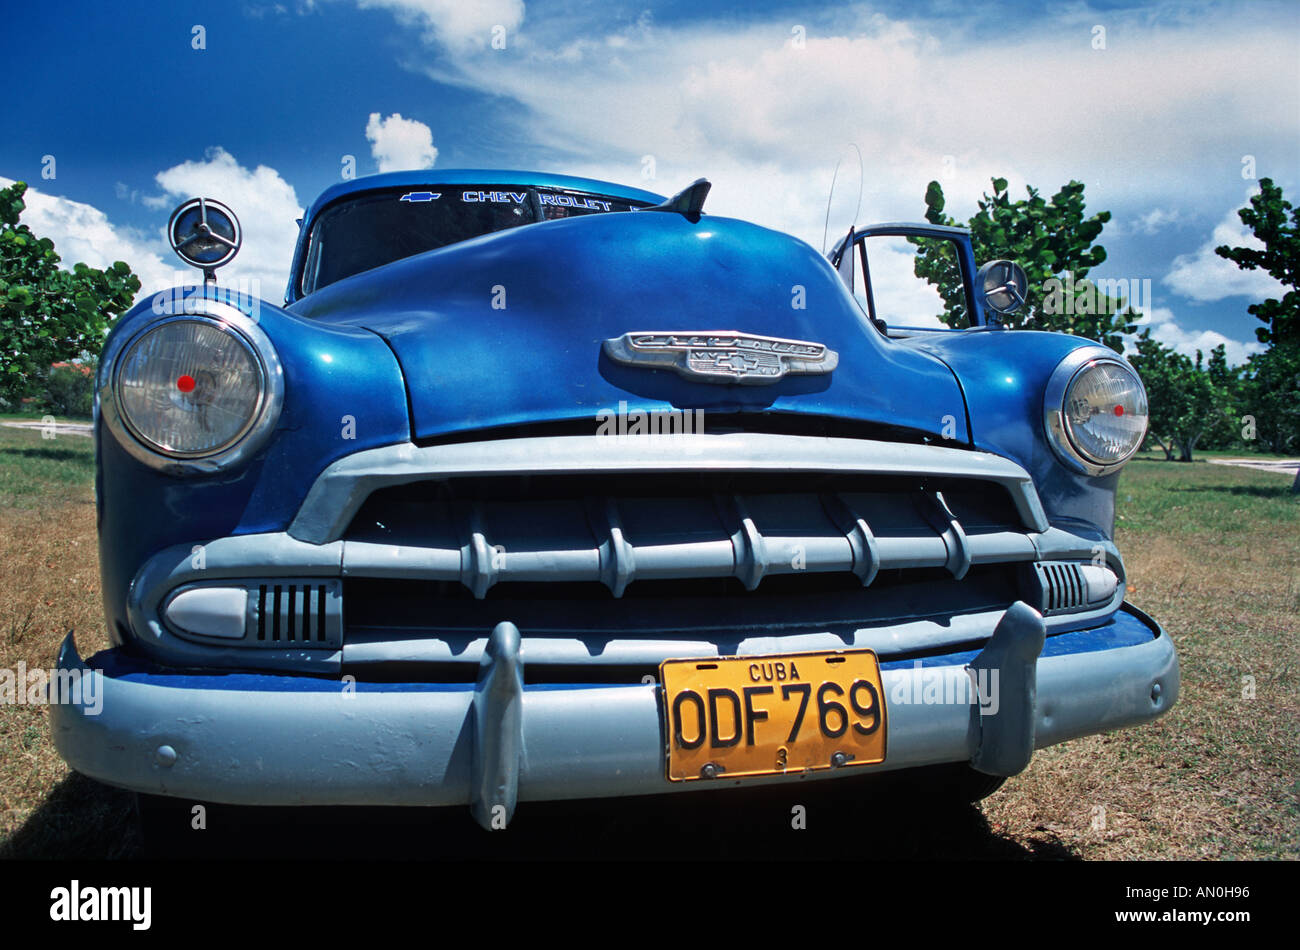 Vintage American Chevrolet car A common local sight in Cuba Photographed in Holguin Province near Guardalavaca CUBA - Stock Image